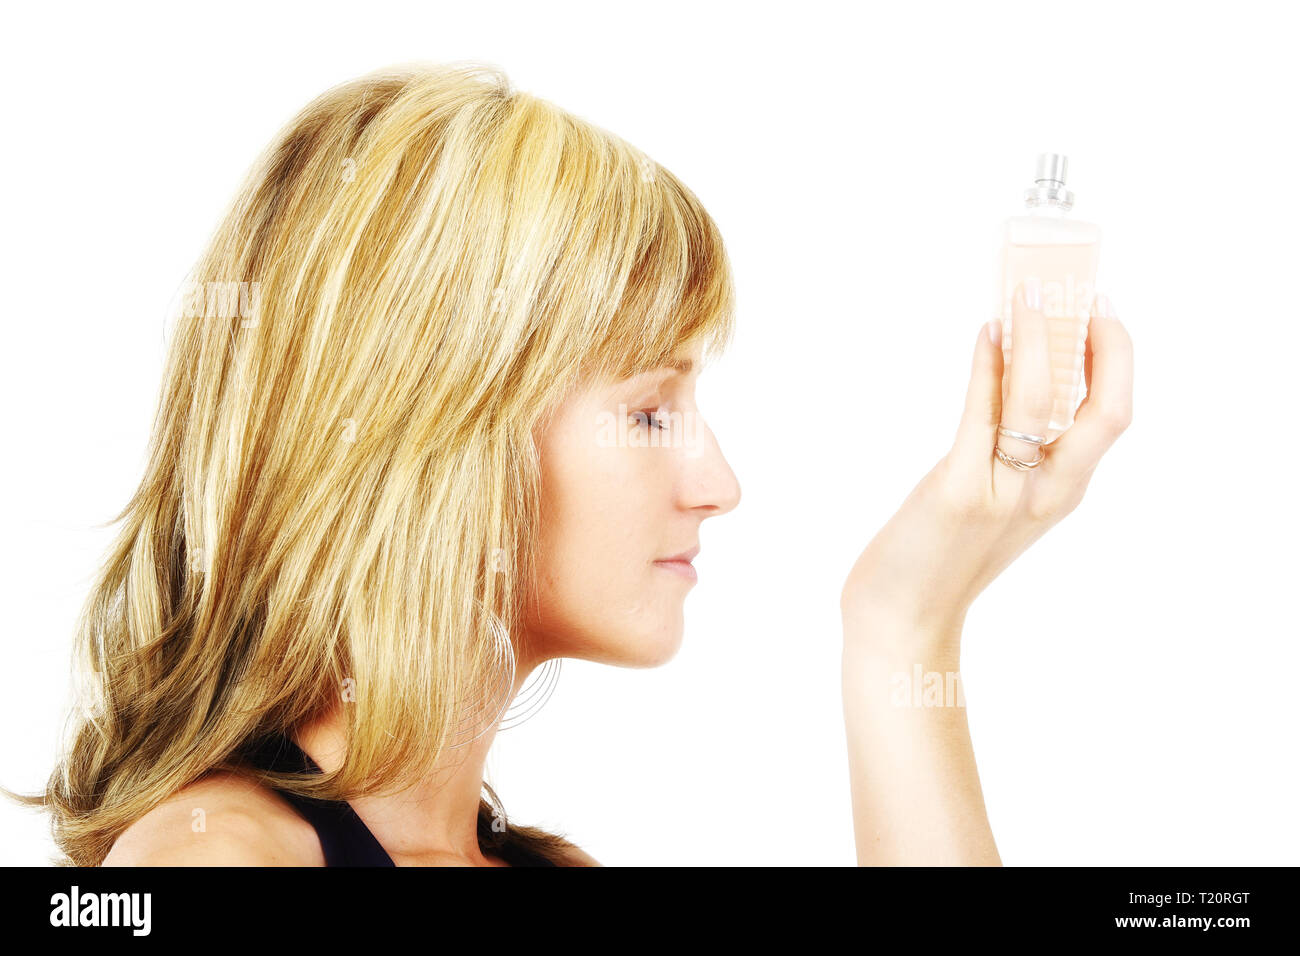 A young woman is enjoying the fragrance of her perfume. Isolated against a white background. - Stock Image